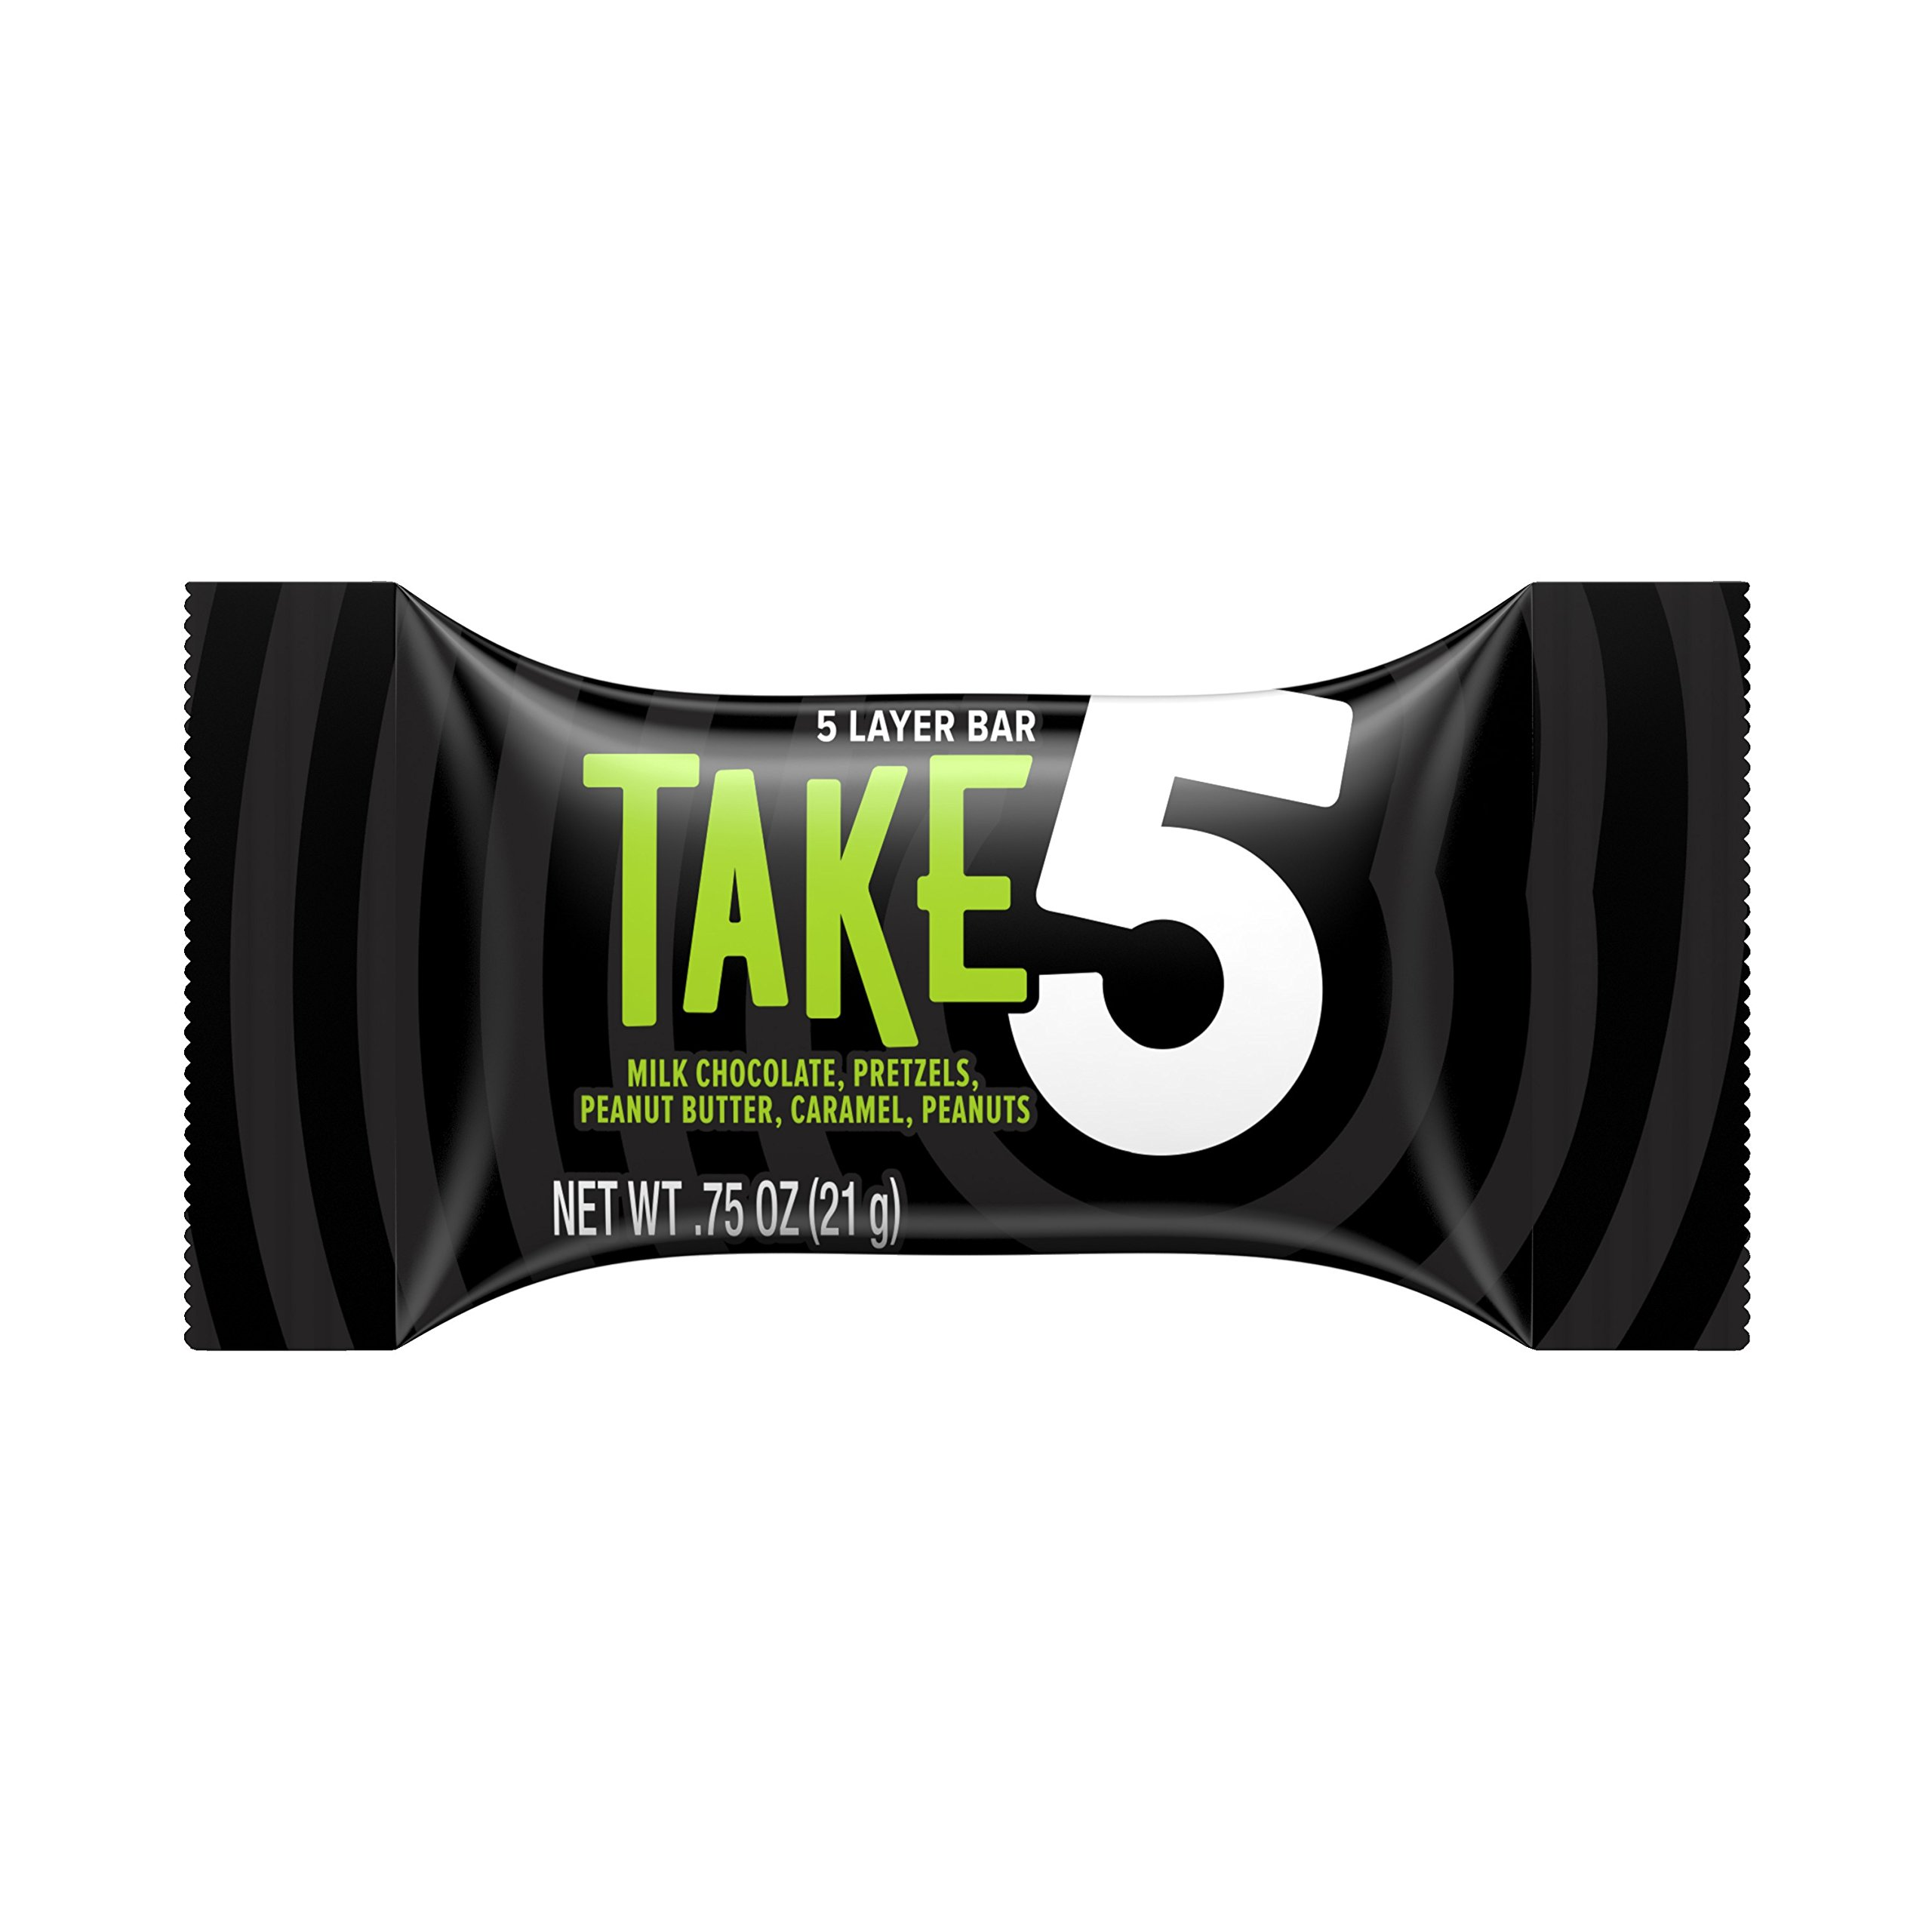 TAKE5 Snack Size Bars (11.25-Ounce Bag, Pack of 6) by Take 5 (Image #5)